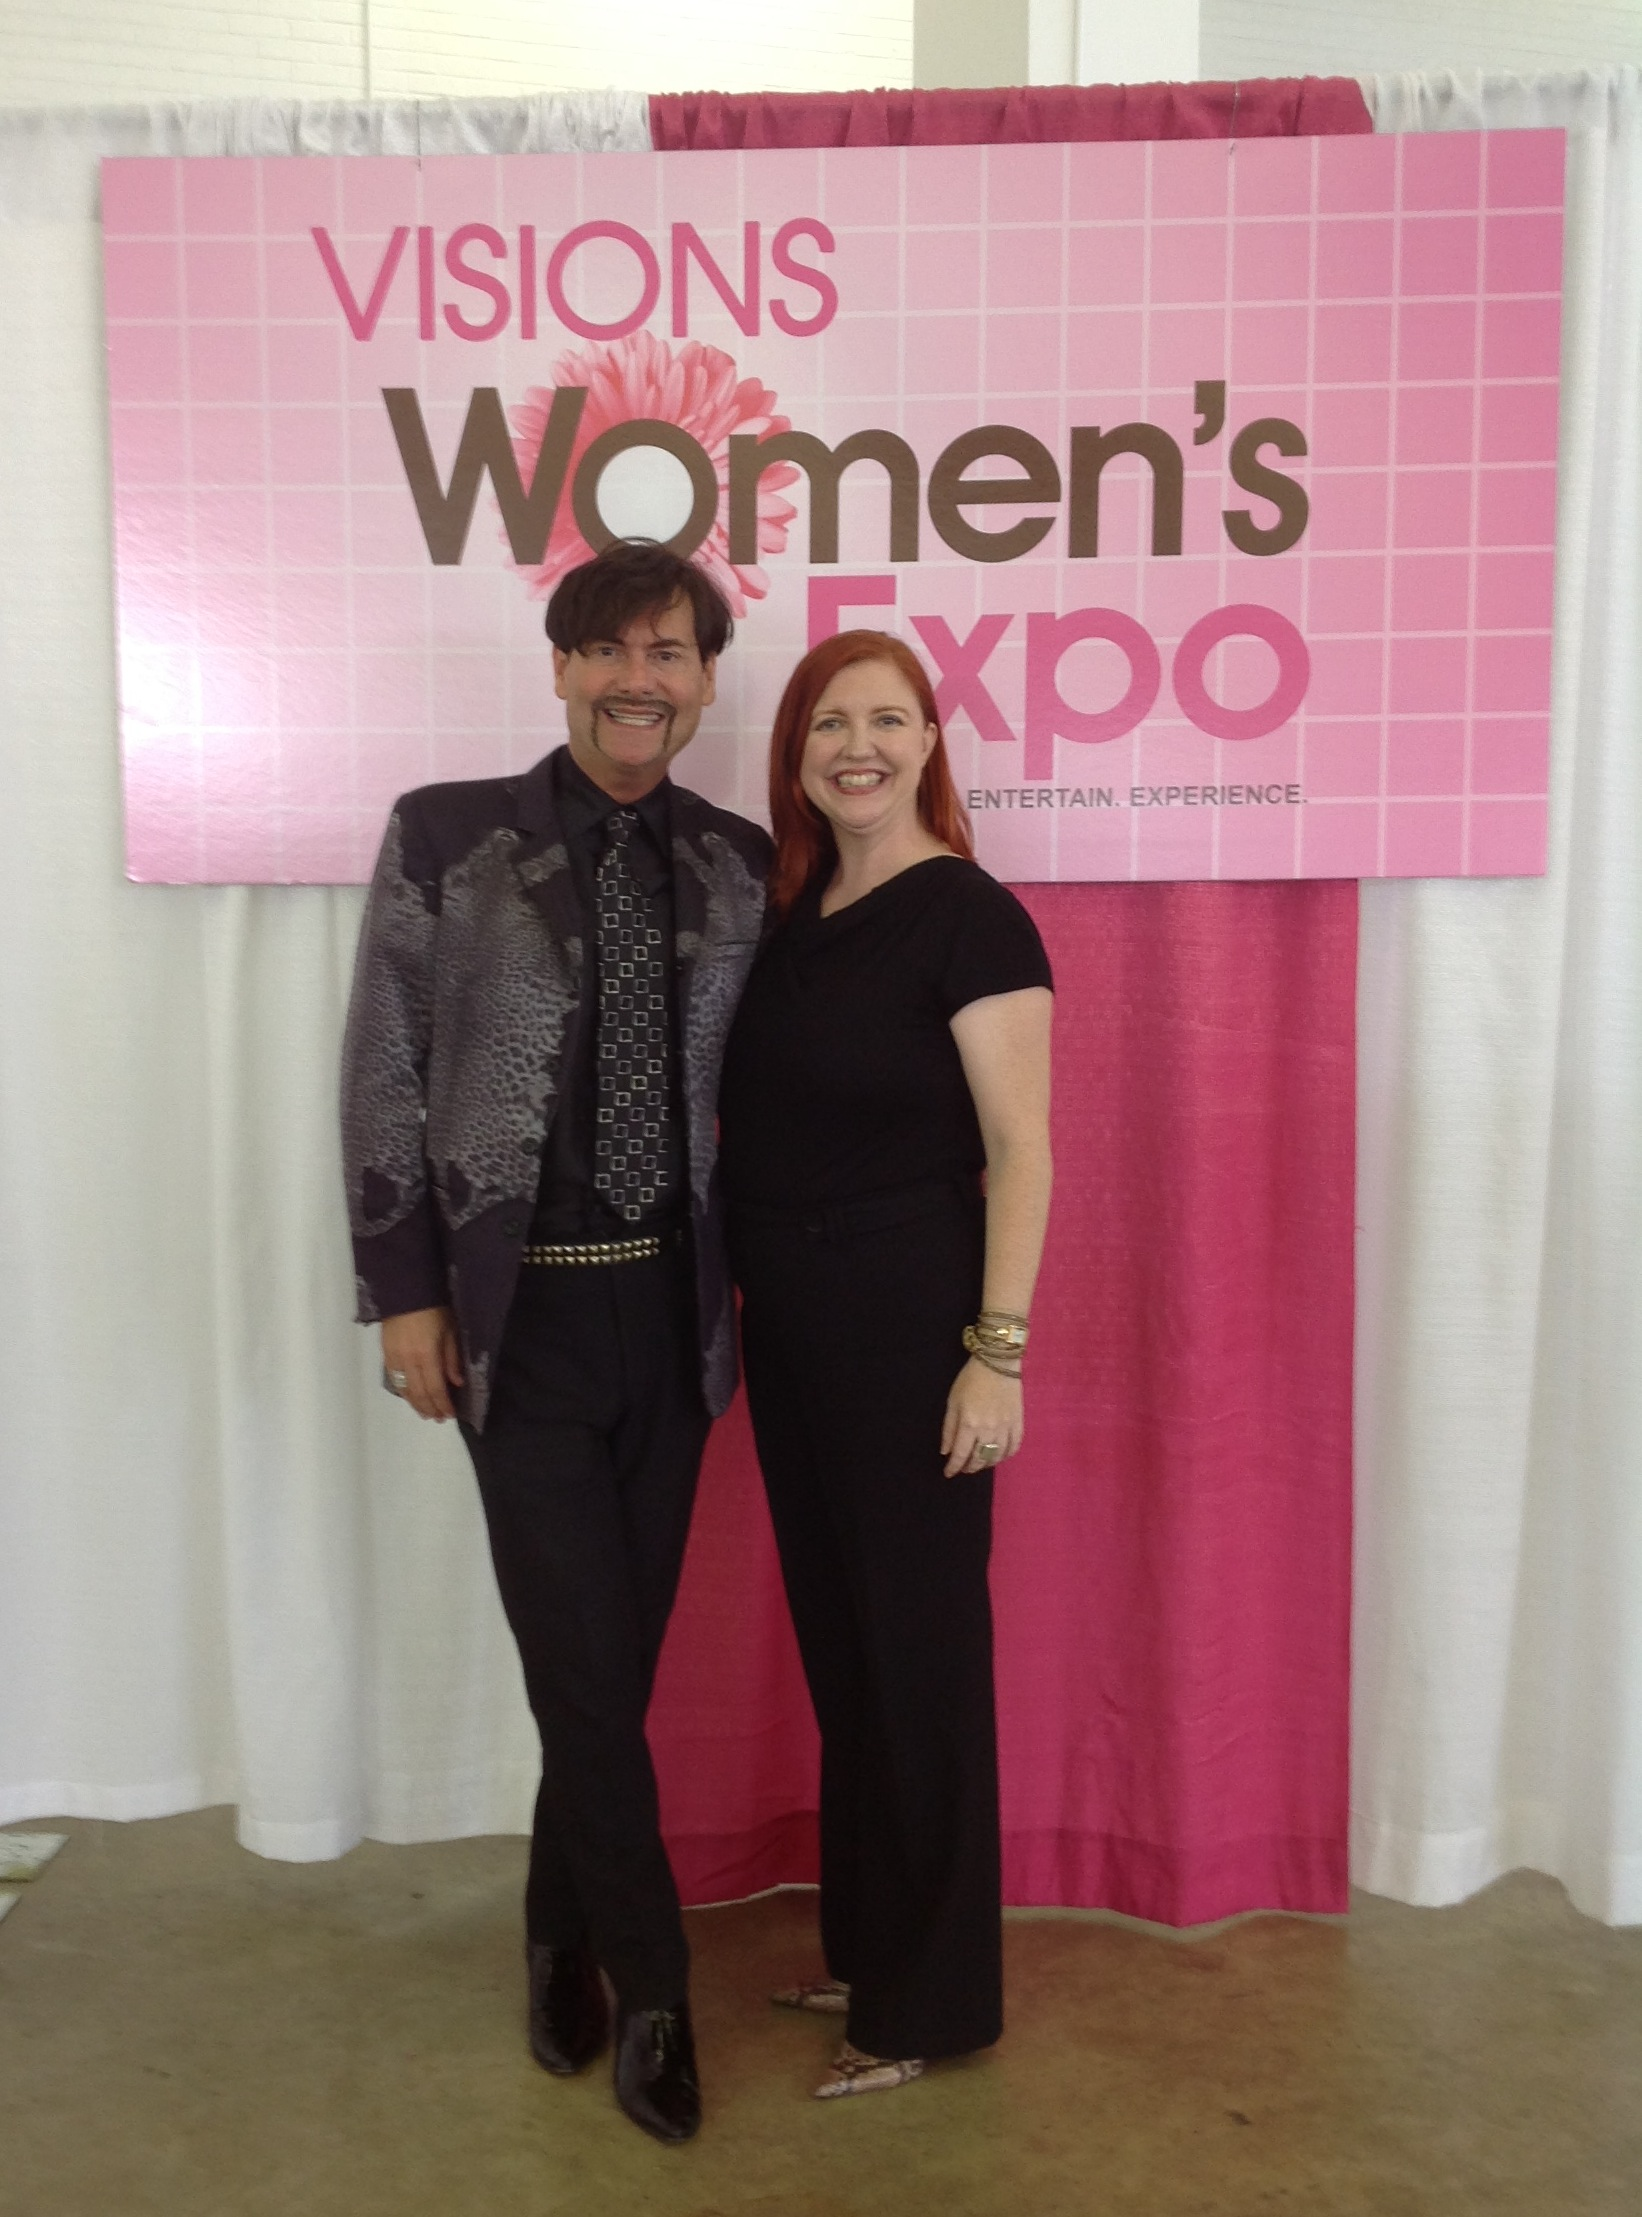 Your dynamic delivery kept everyone alert and involved. All that wonderful energy you have is certainly put to good use - you were our HIGHEST RATED SPEAKER! - Steve Kemble, America's Sassiest Lifestyle Guru and Emcee, Visions Women's Expo